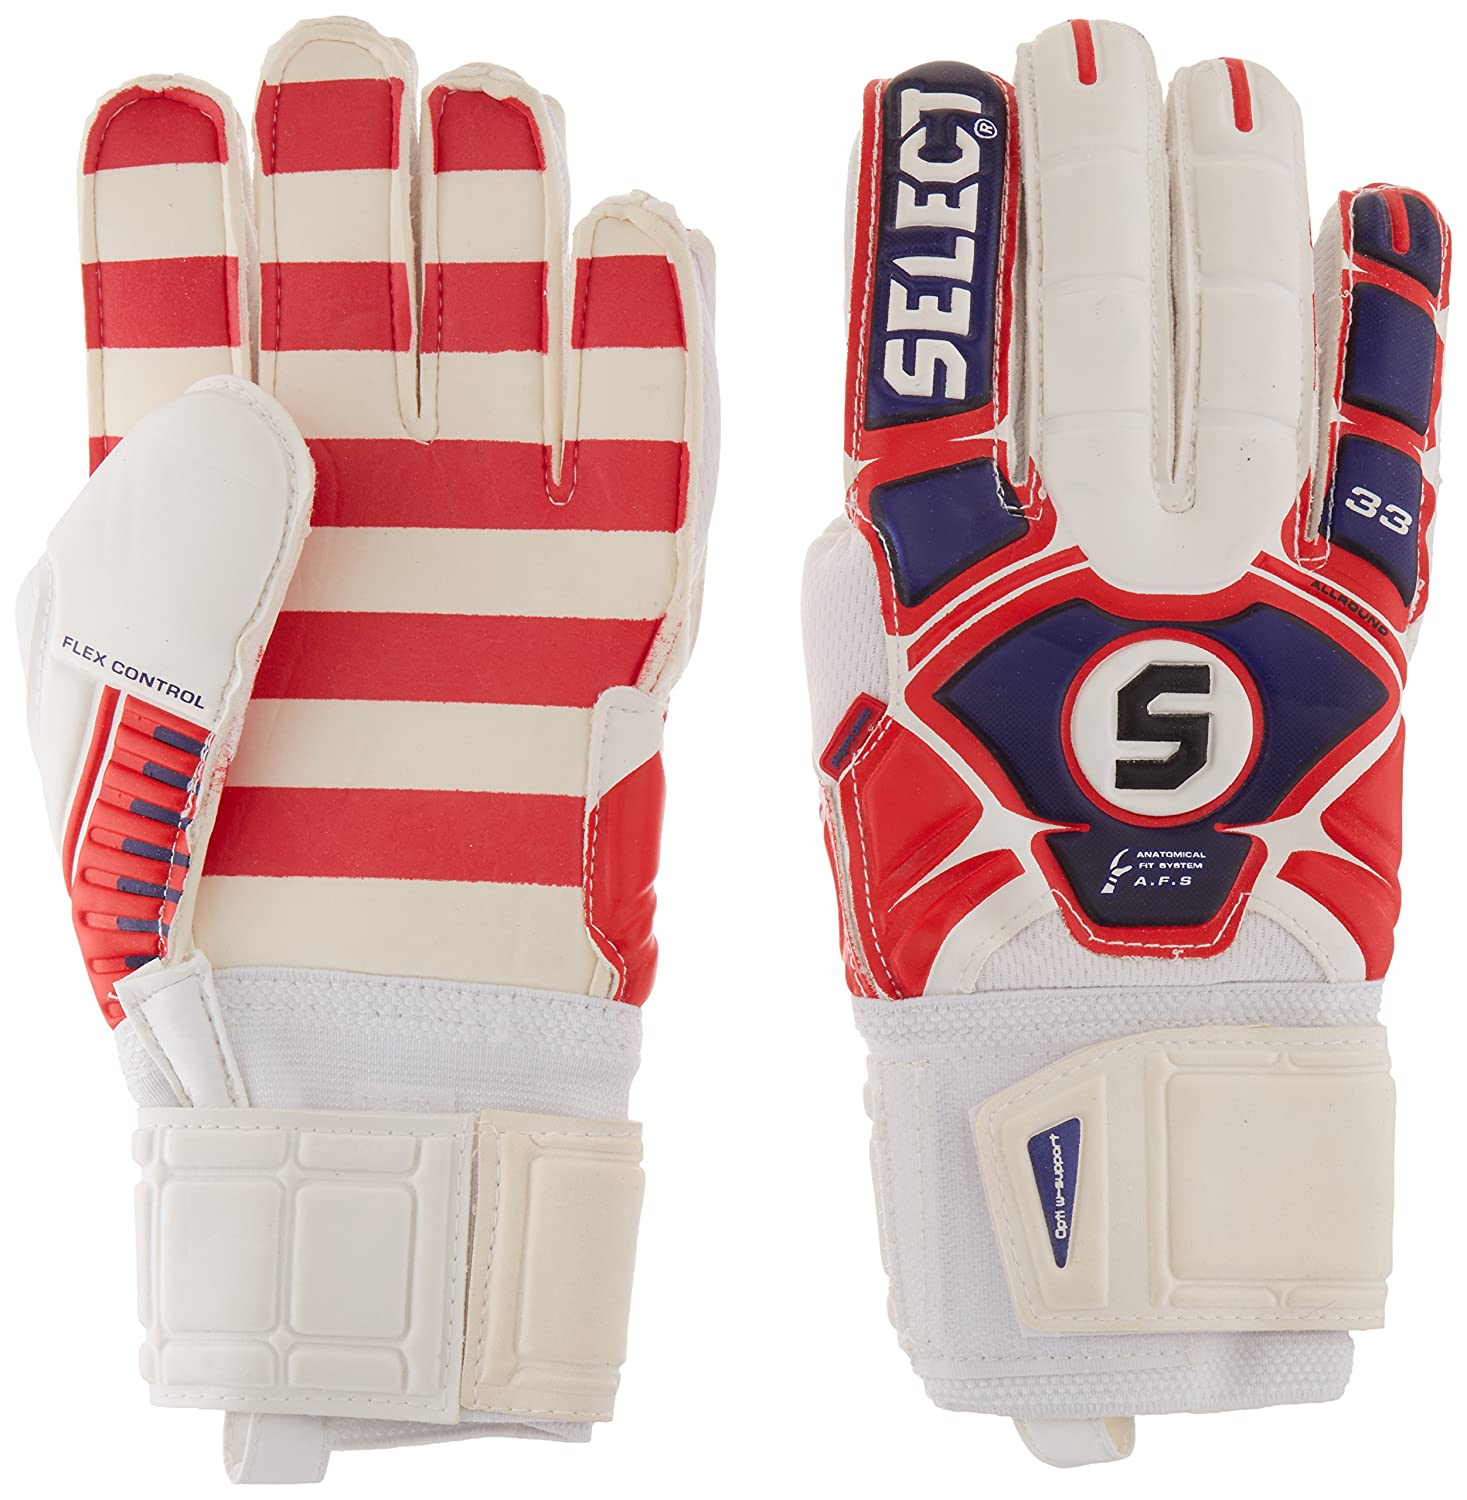 Select 33 All Round GK Glove